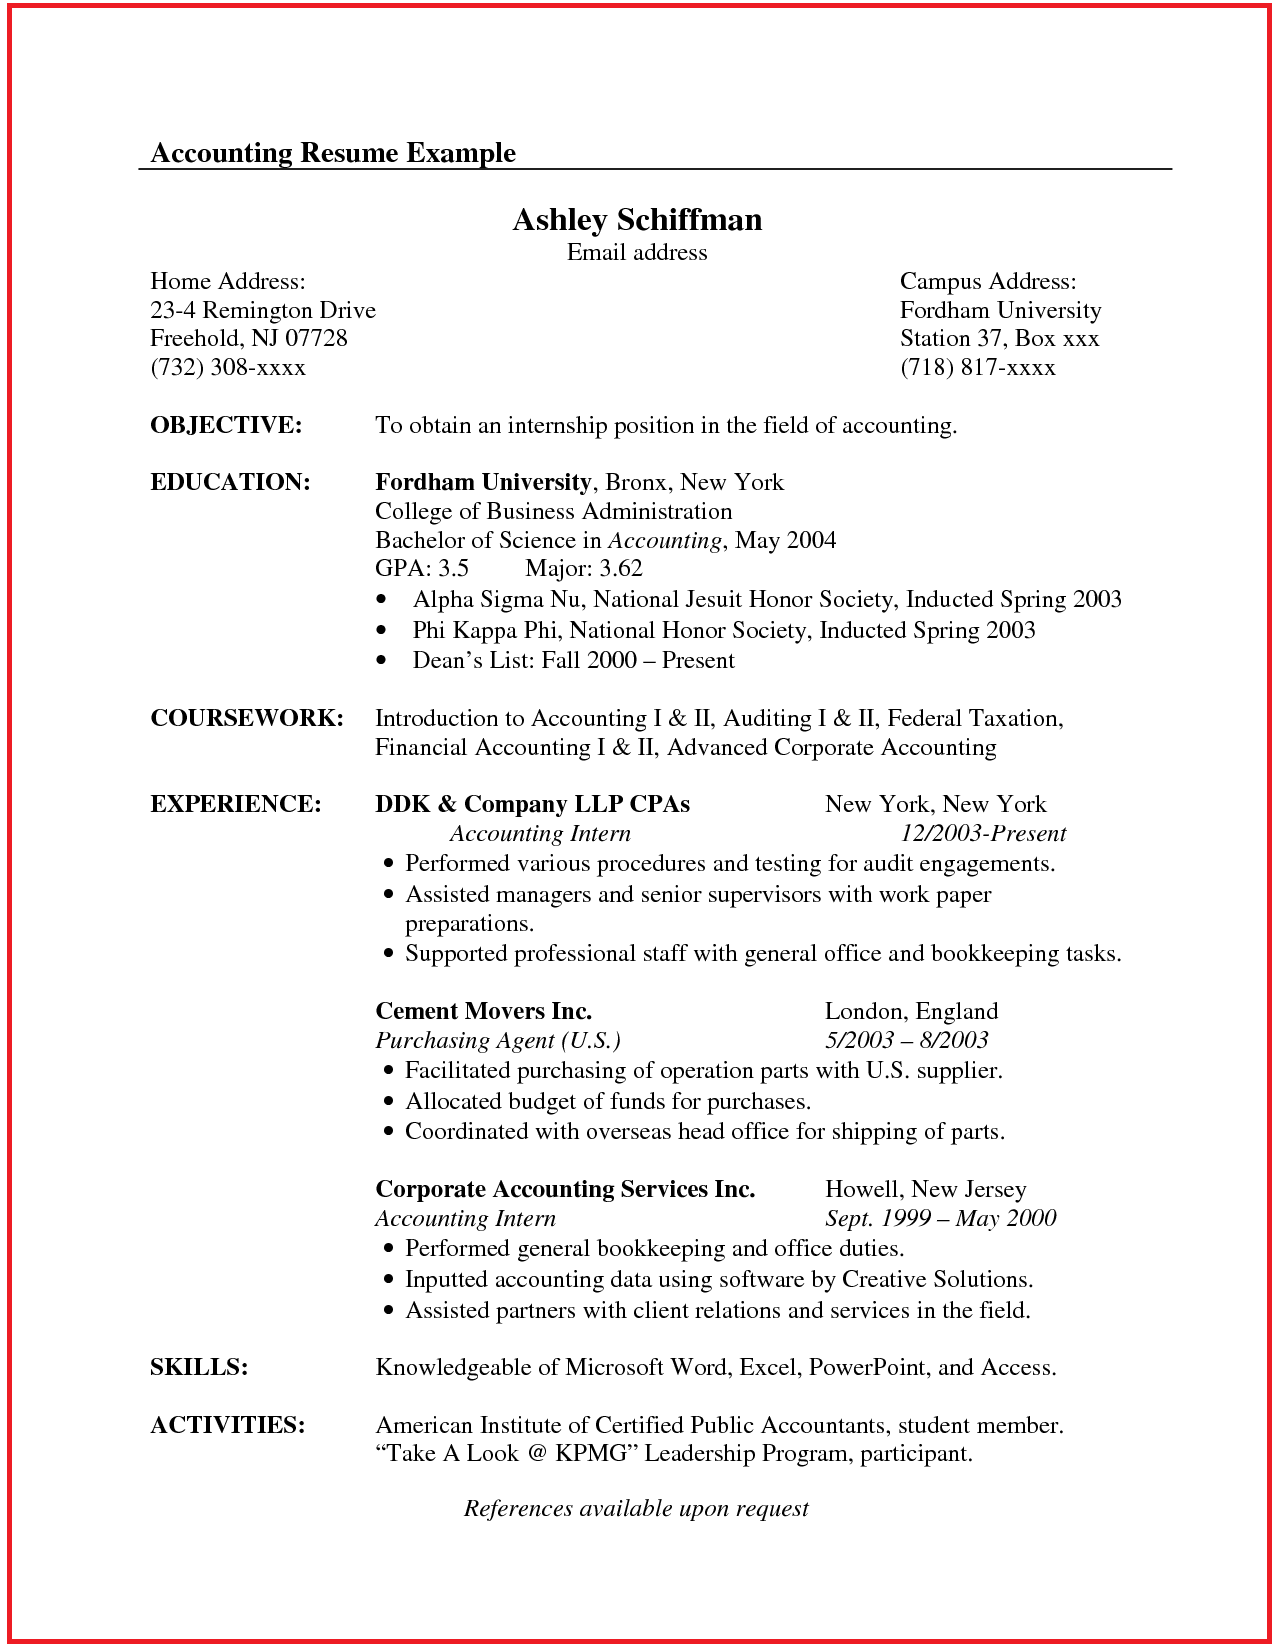 Sample Resume Canada Cover Letter Truck Driver Template Accountant  Httpwwwjobresumewebsiteaccountant  Accounting Resume Cover Letter